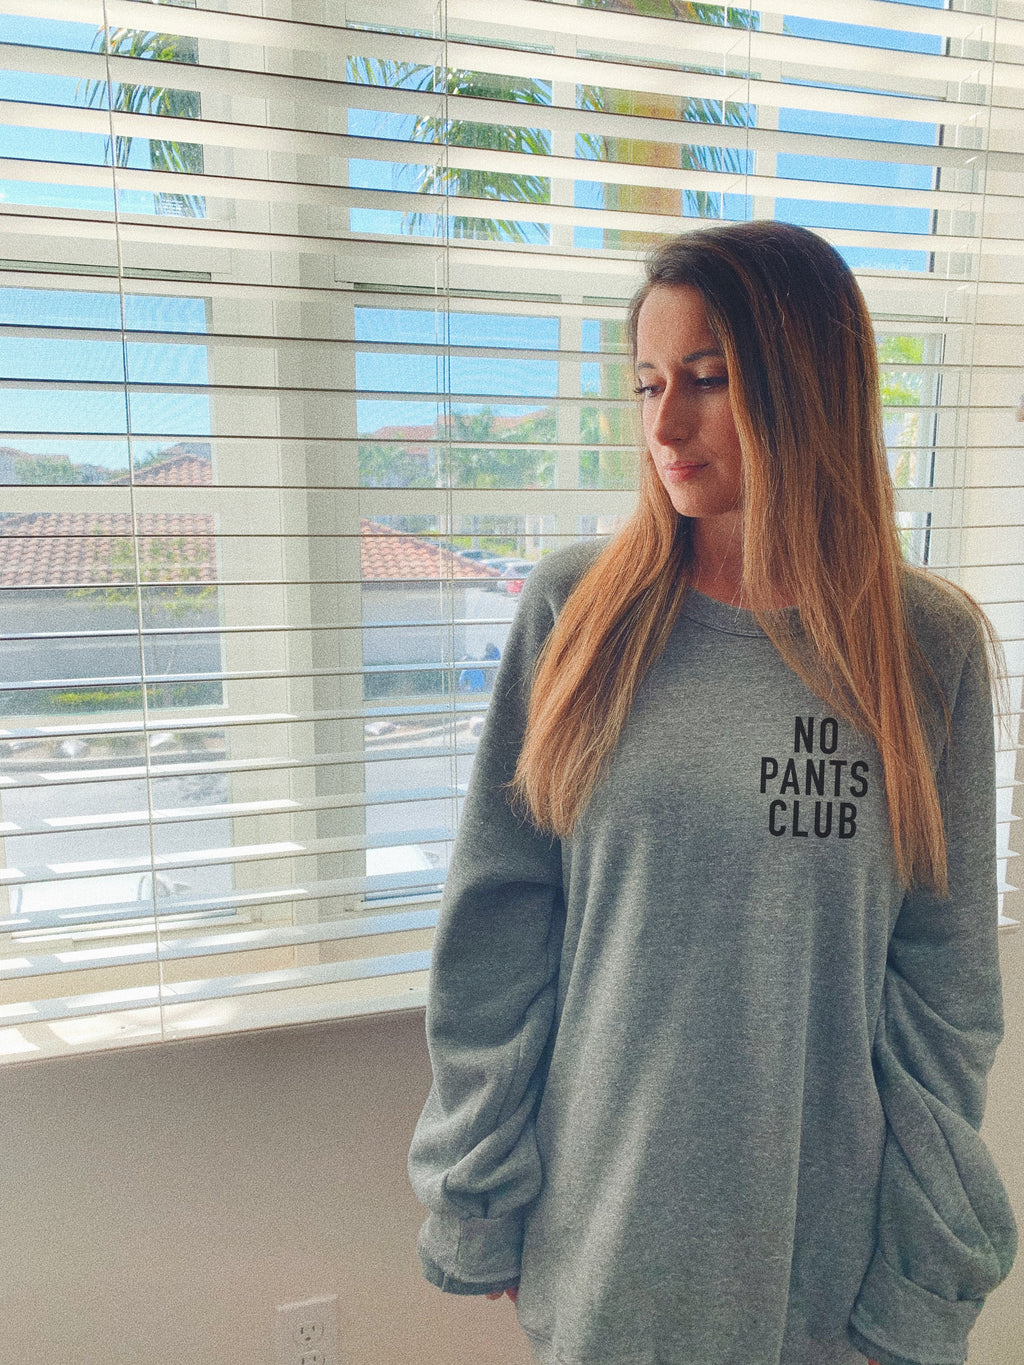 NO PANTS CLUB! This sweatshirt is great to wear if you plan on lounging around at home. Whether you will be watching Netflix and chilling or just relaxing at home, this funny sweatshirt comes in handy! Say no to pants with this cute sweatshirt!